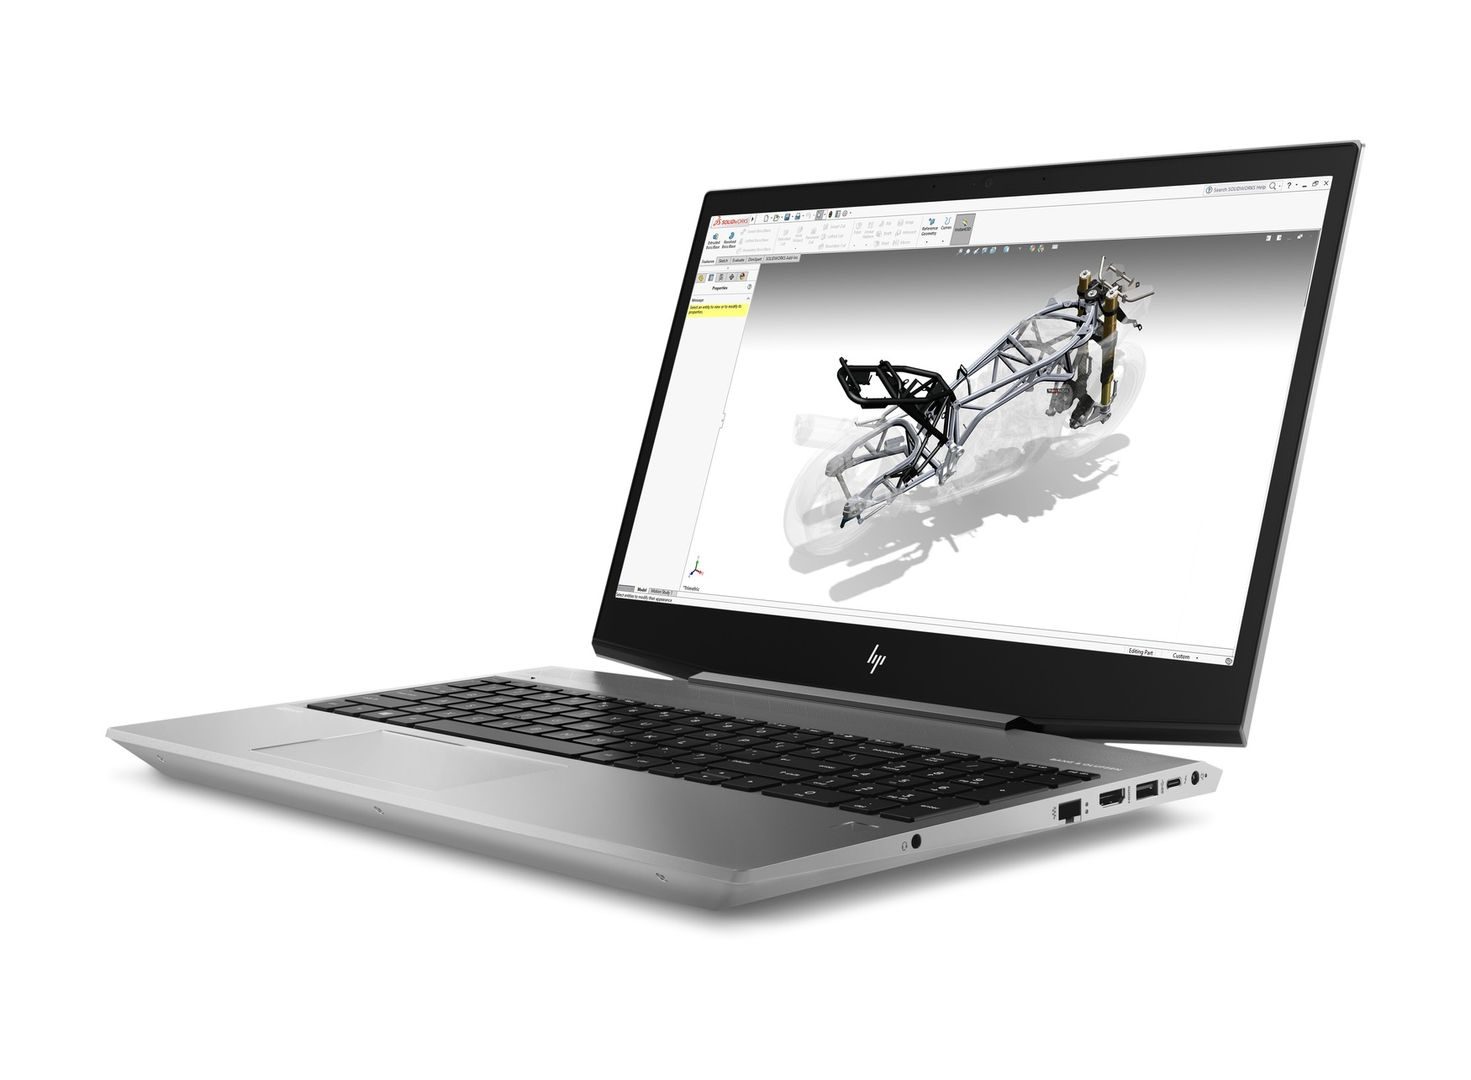 HP ZBook 15v G5 Mobile Workstation - Core i7 8750H   2.2 GHz - Win 10 Pro  64-bitars - 16 GB RAM - 512 GB SSD - 15.6